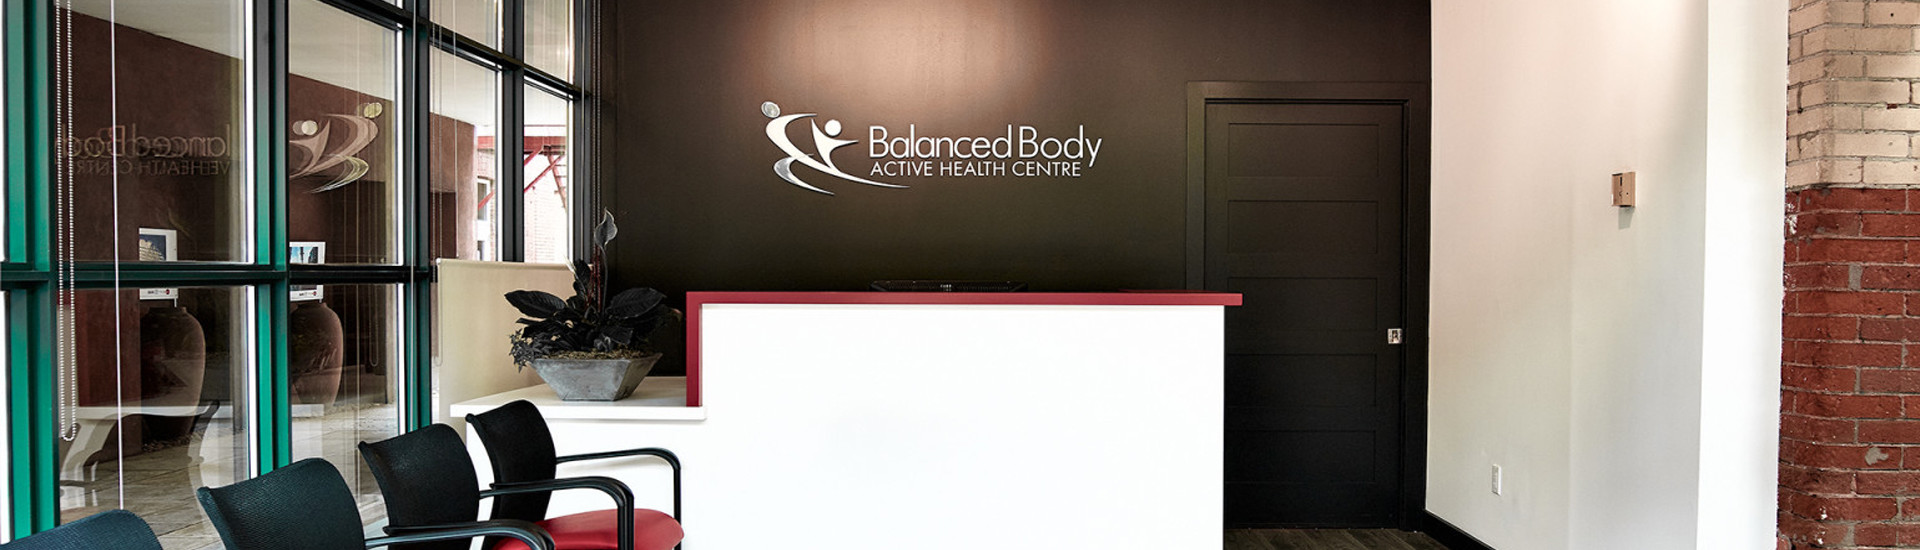 Downtown Toronto Health Services - Balanced Body AHC